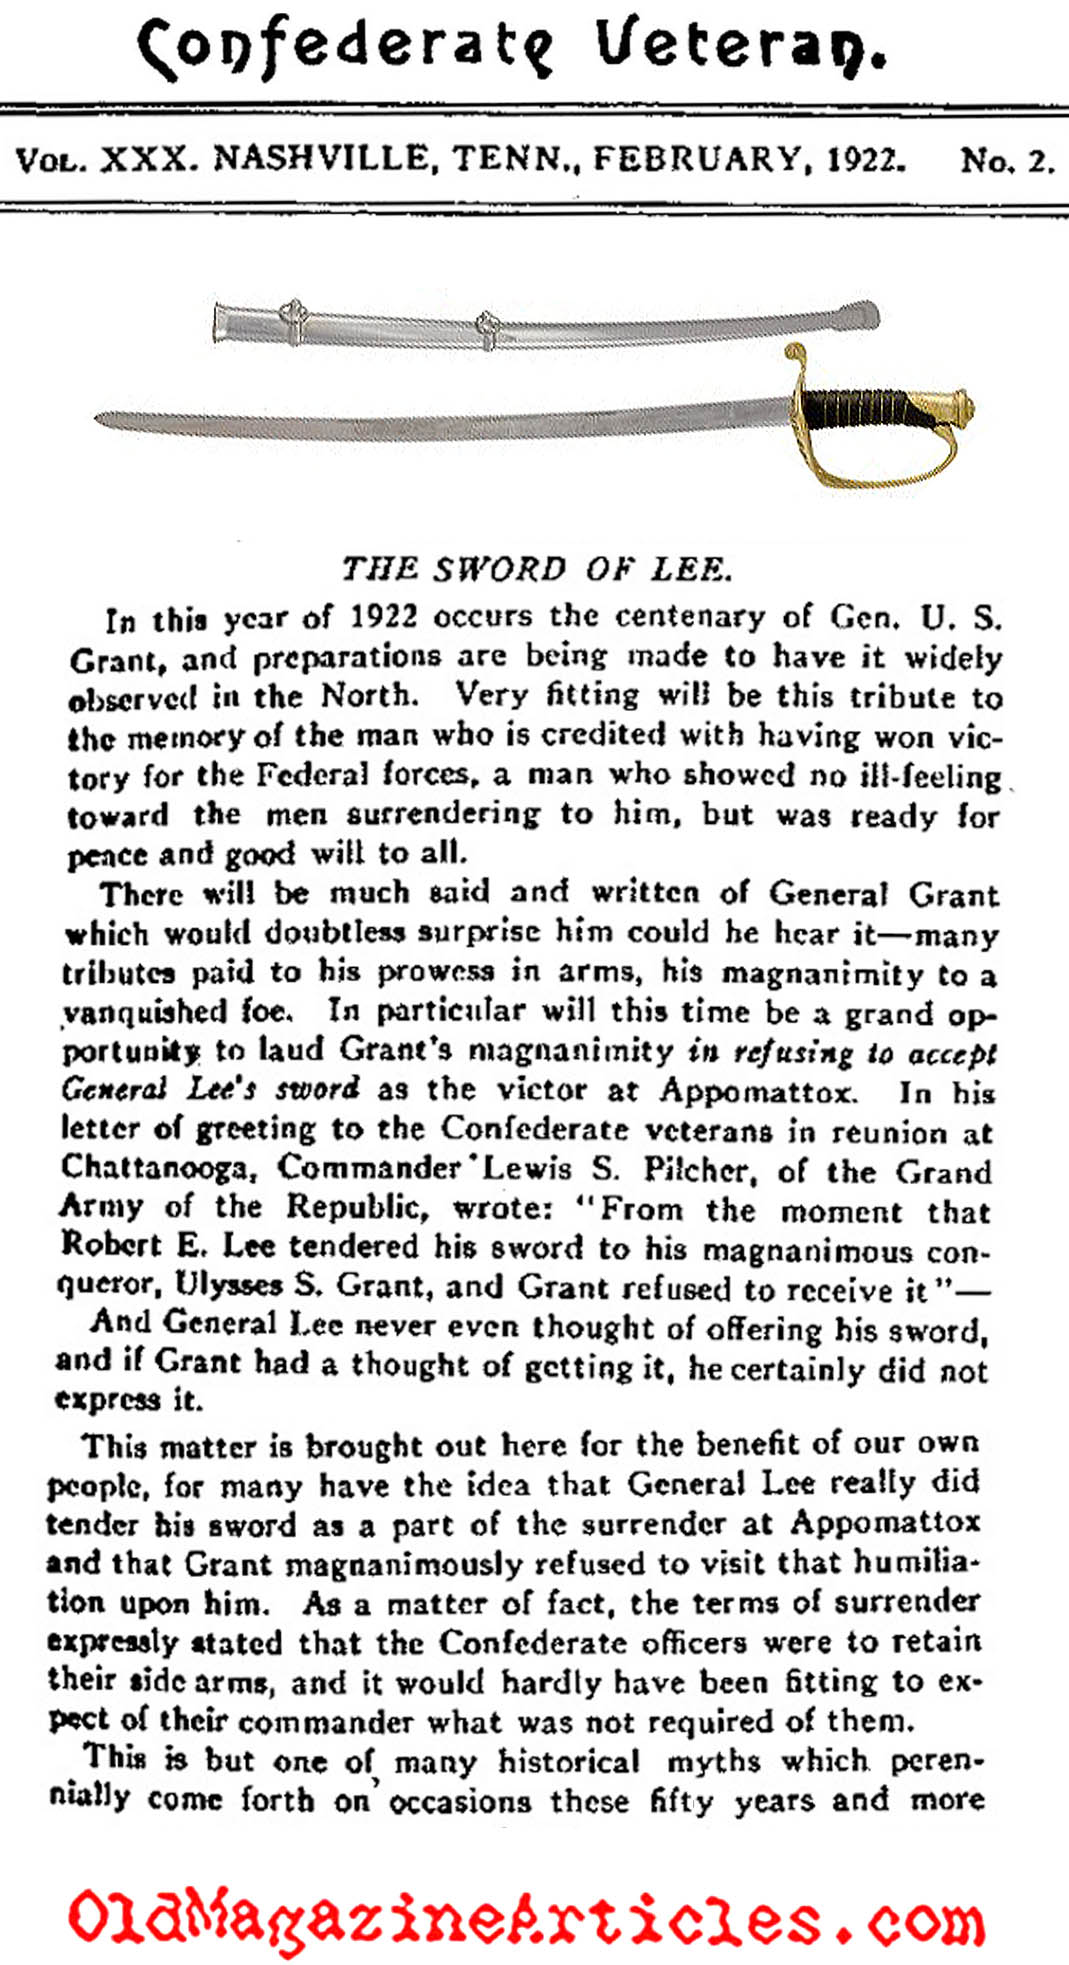 The Myth of Lee's Sword  (Confederate Veteran, 1922)